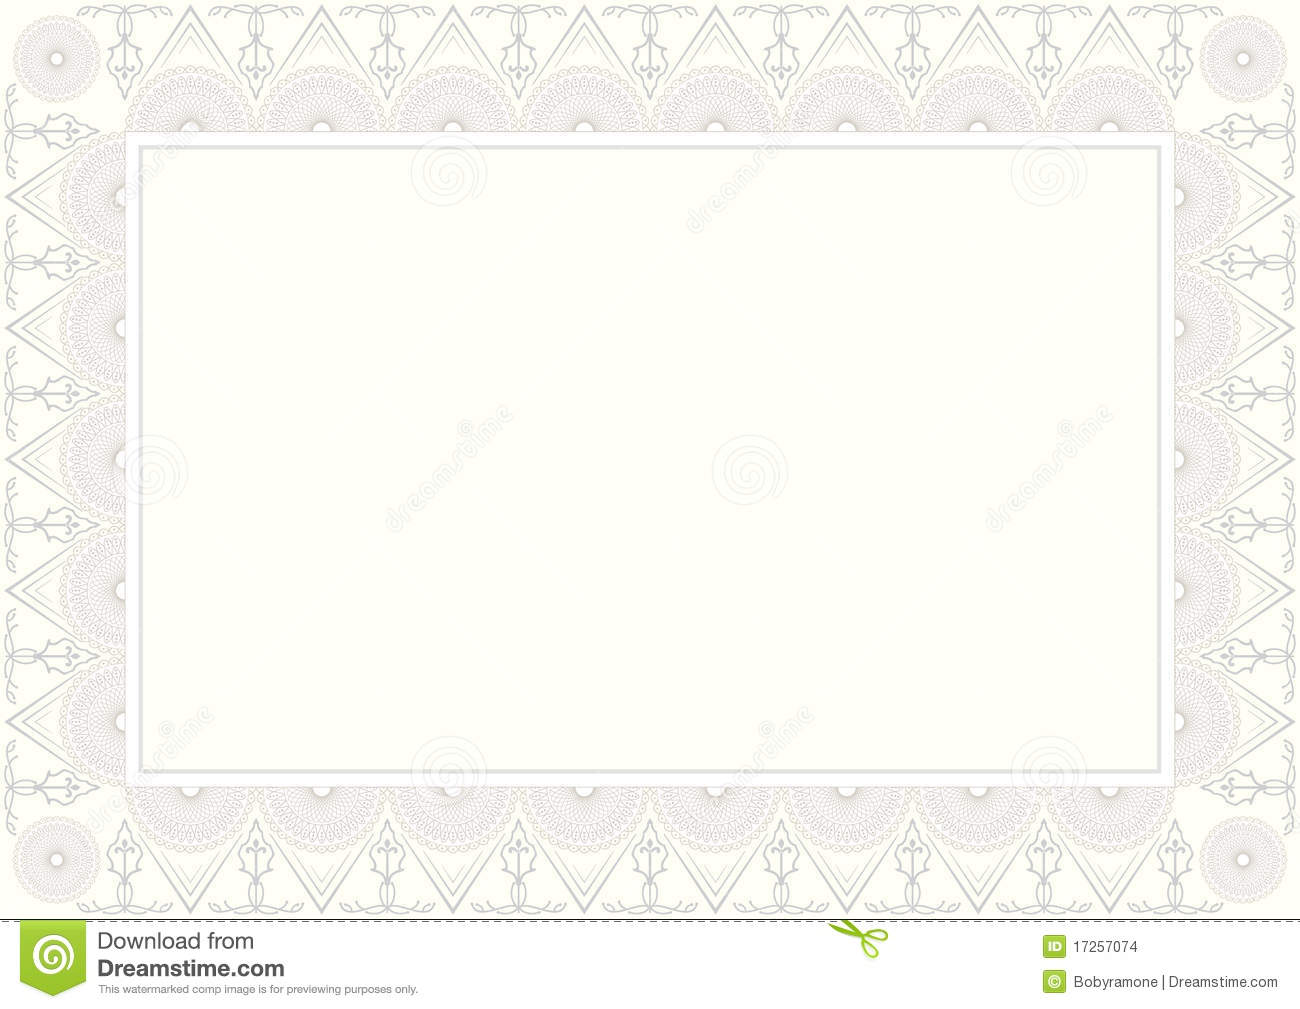 Certificate background stock vector. Illustration of ...